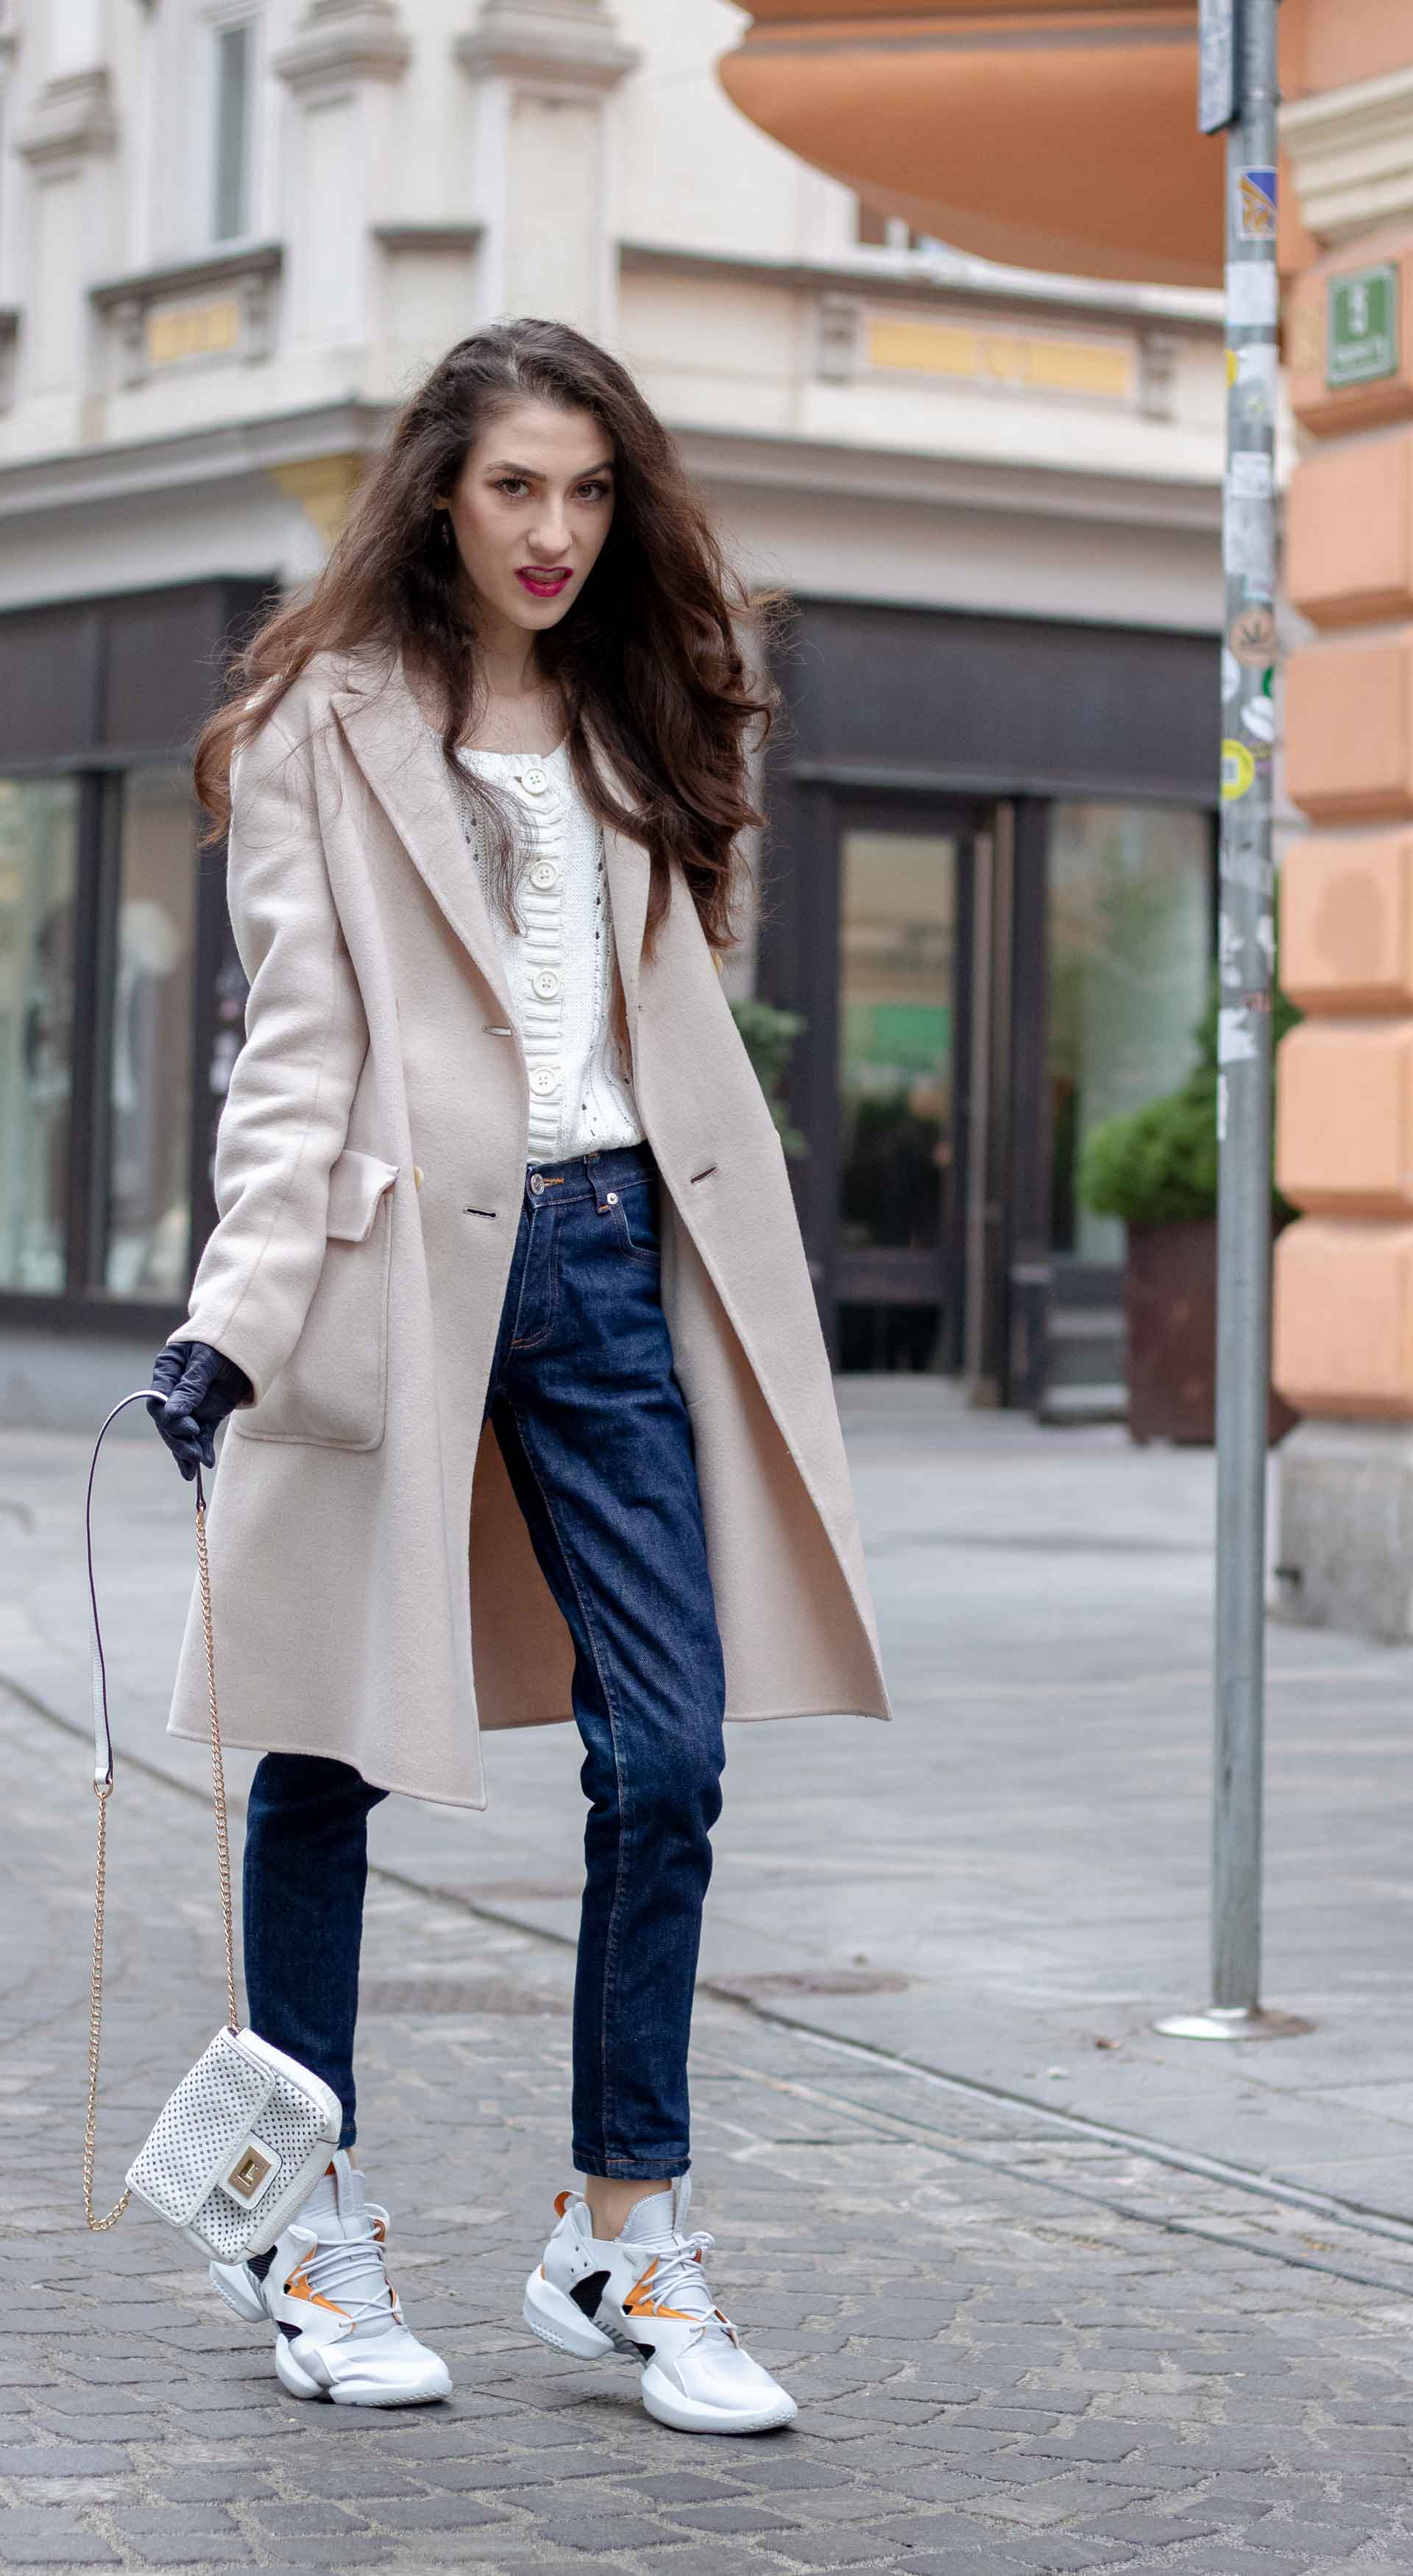 Beautiful Slovenian Fashion Blogger Veronika Lipar of Brunette from Wall wearing white Mango cardigan tucked into dark blue denim jeans from a.p.c., Weekend Max Mara coat, Reebok instapump sneakers walking on the street